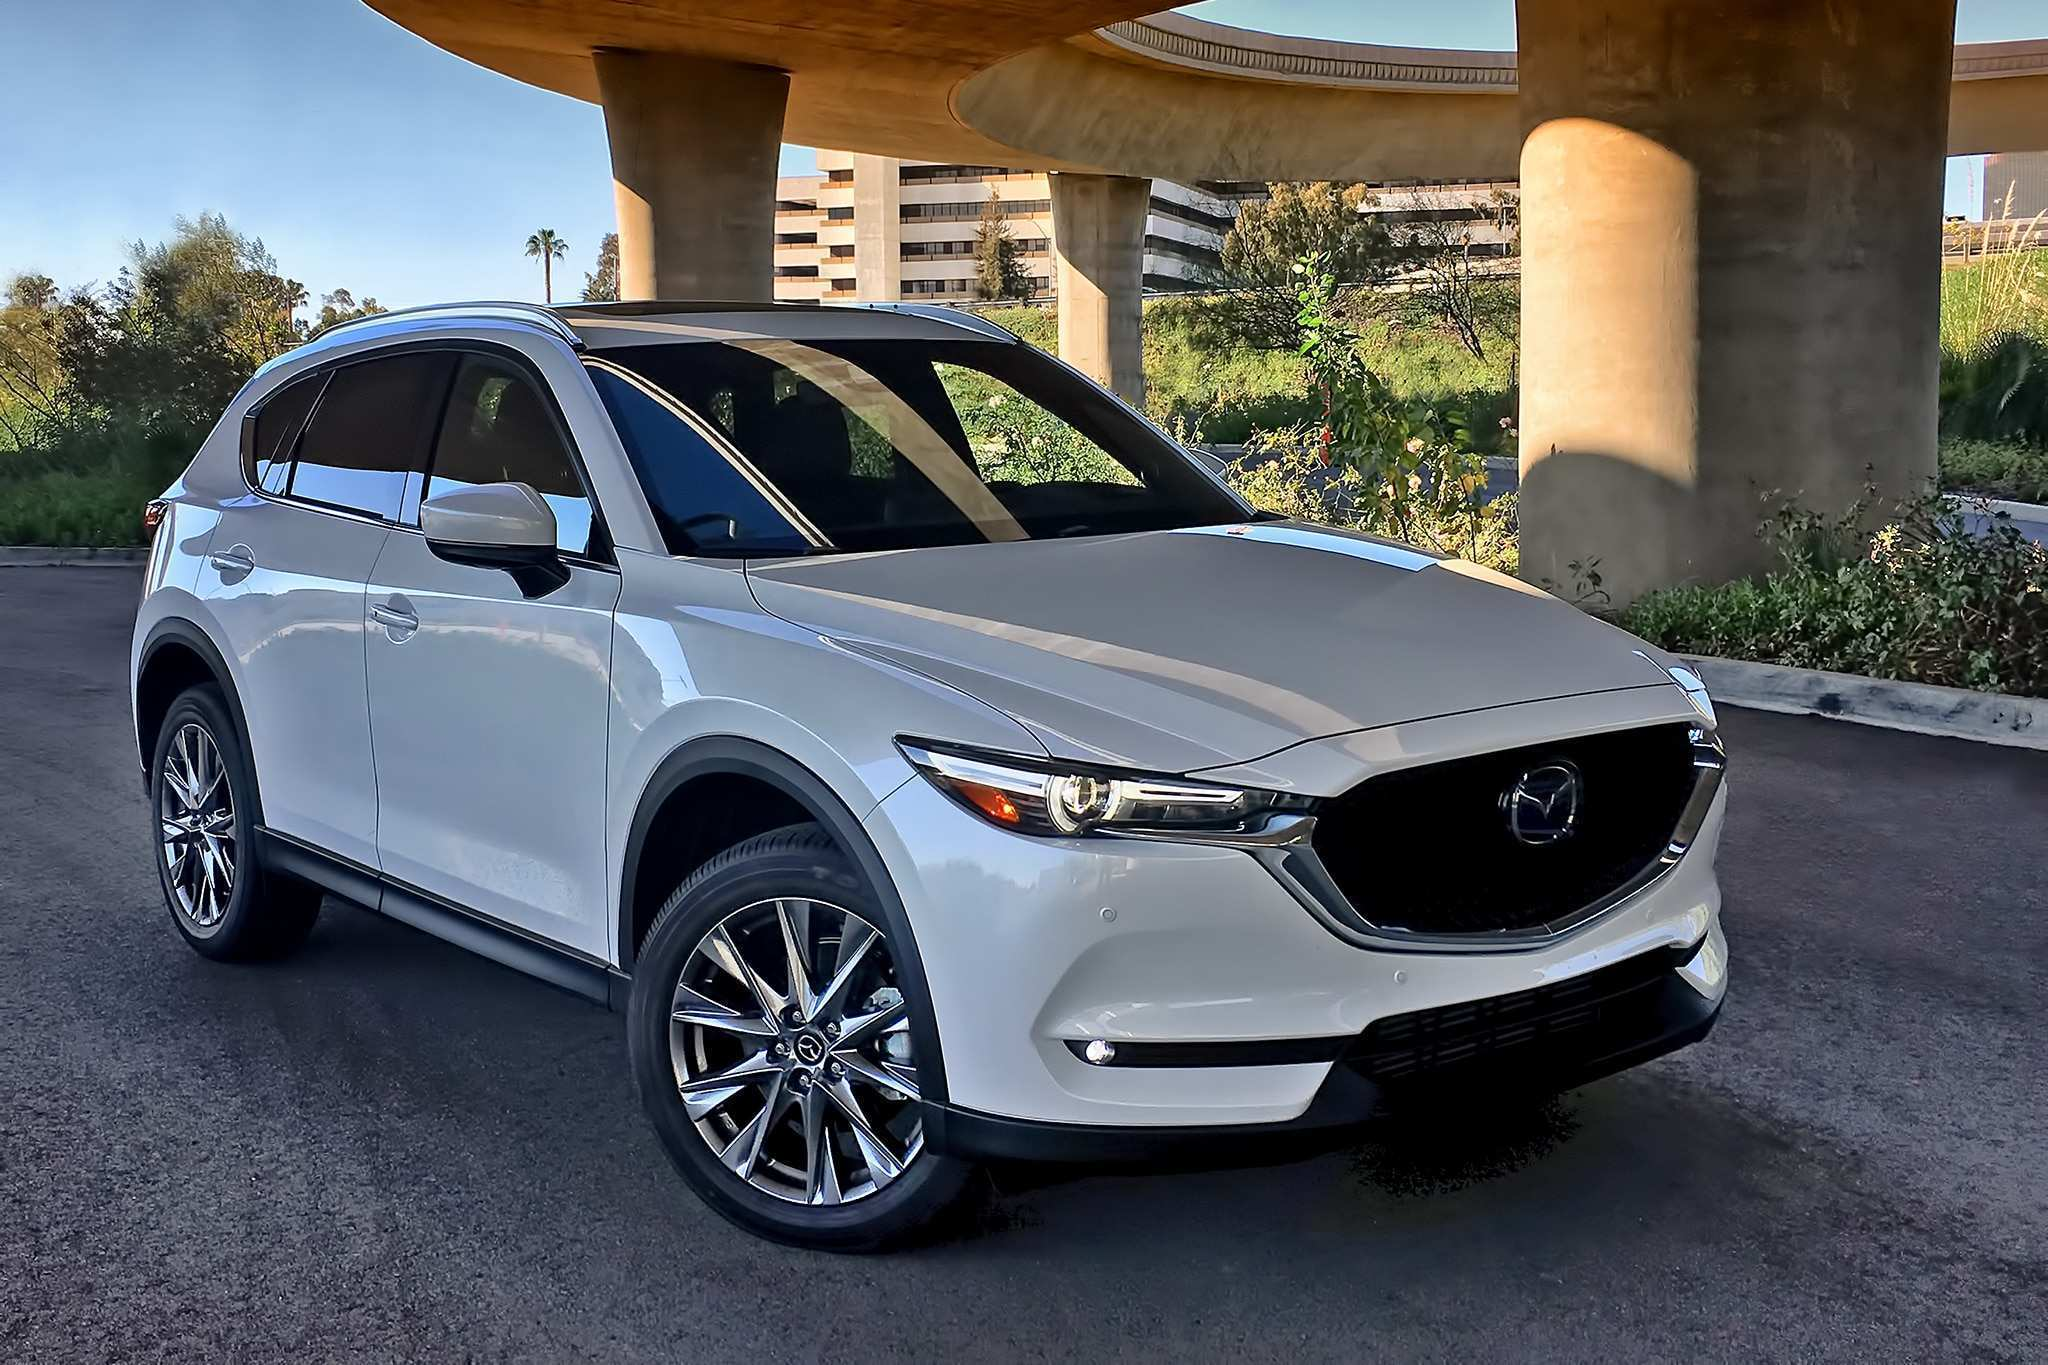 97 New Mazda X5 2020 Price And Release Date